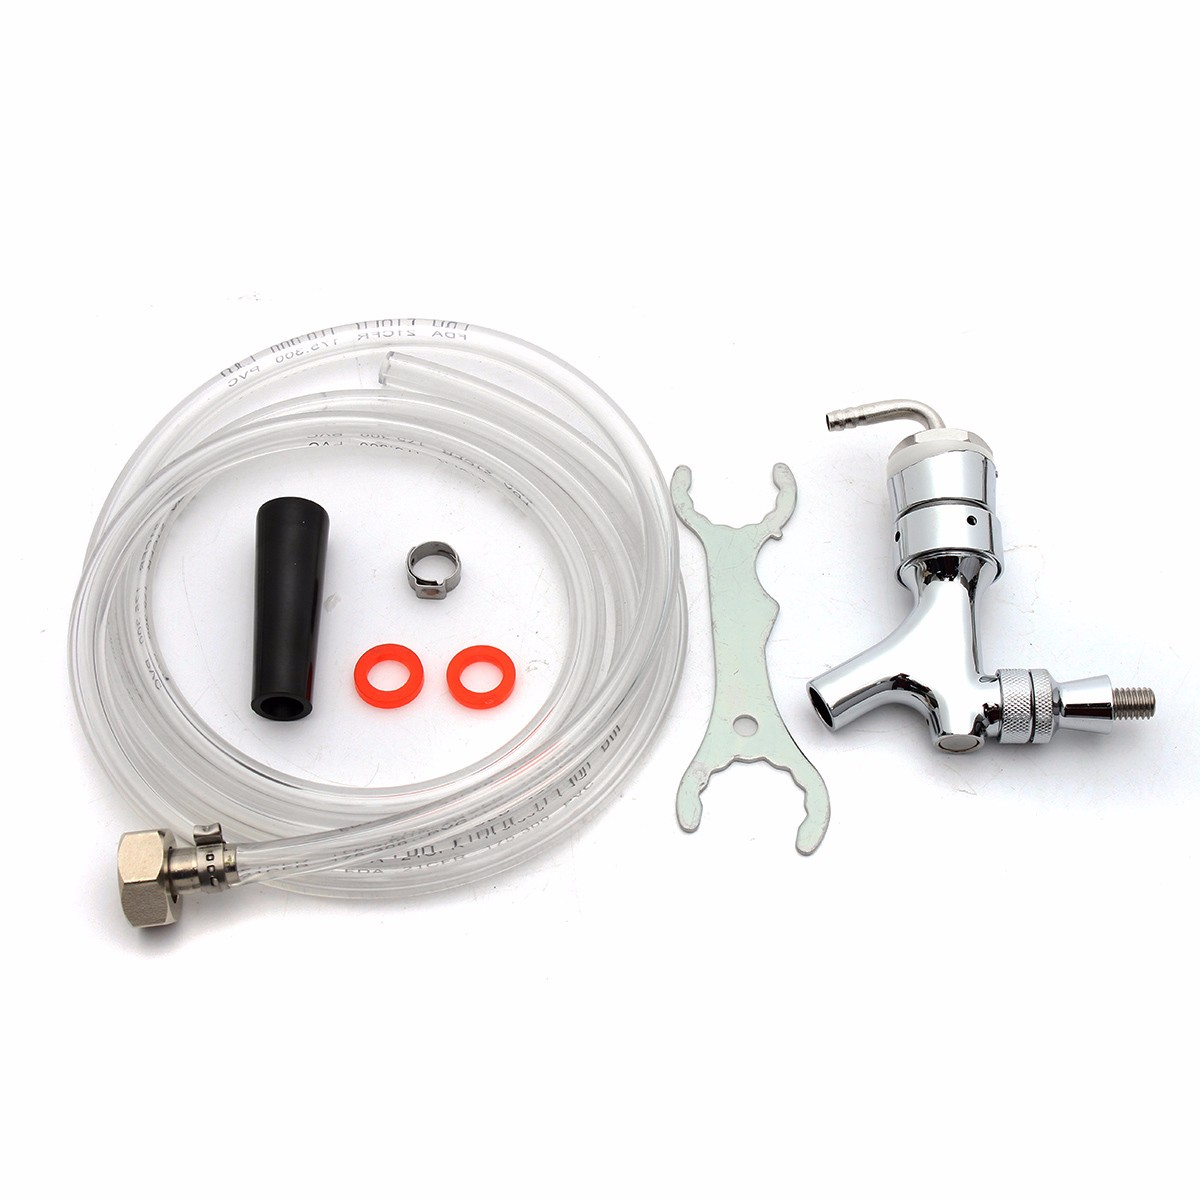 Draft Beer Tower Rebuild Kit with Shank Beer Faucet Hose Wrench ...